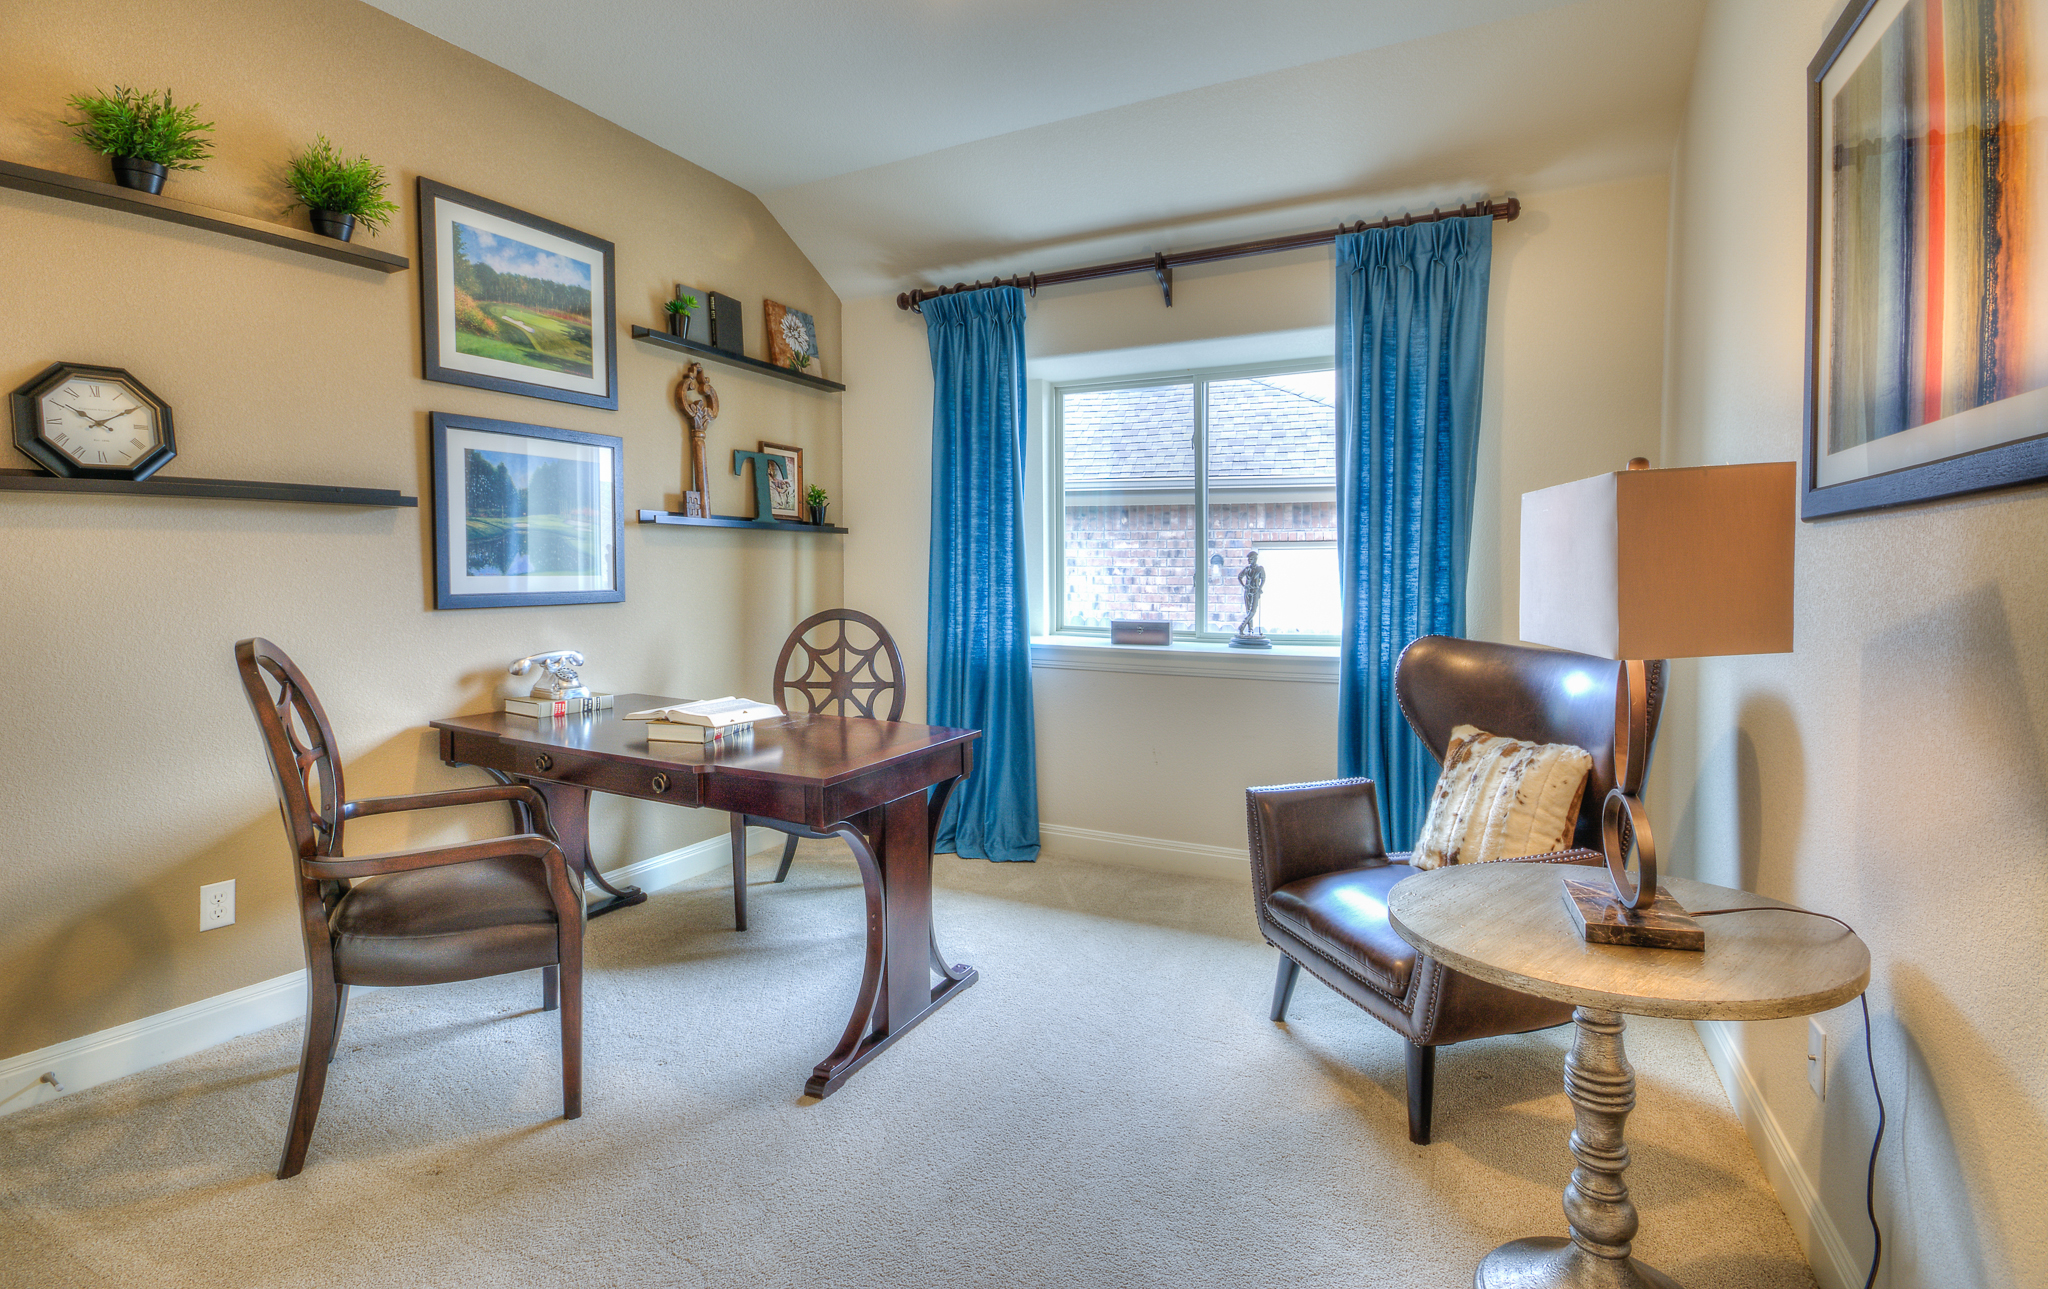 Home office interior design for model home by Michelle Thomas in TX